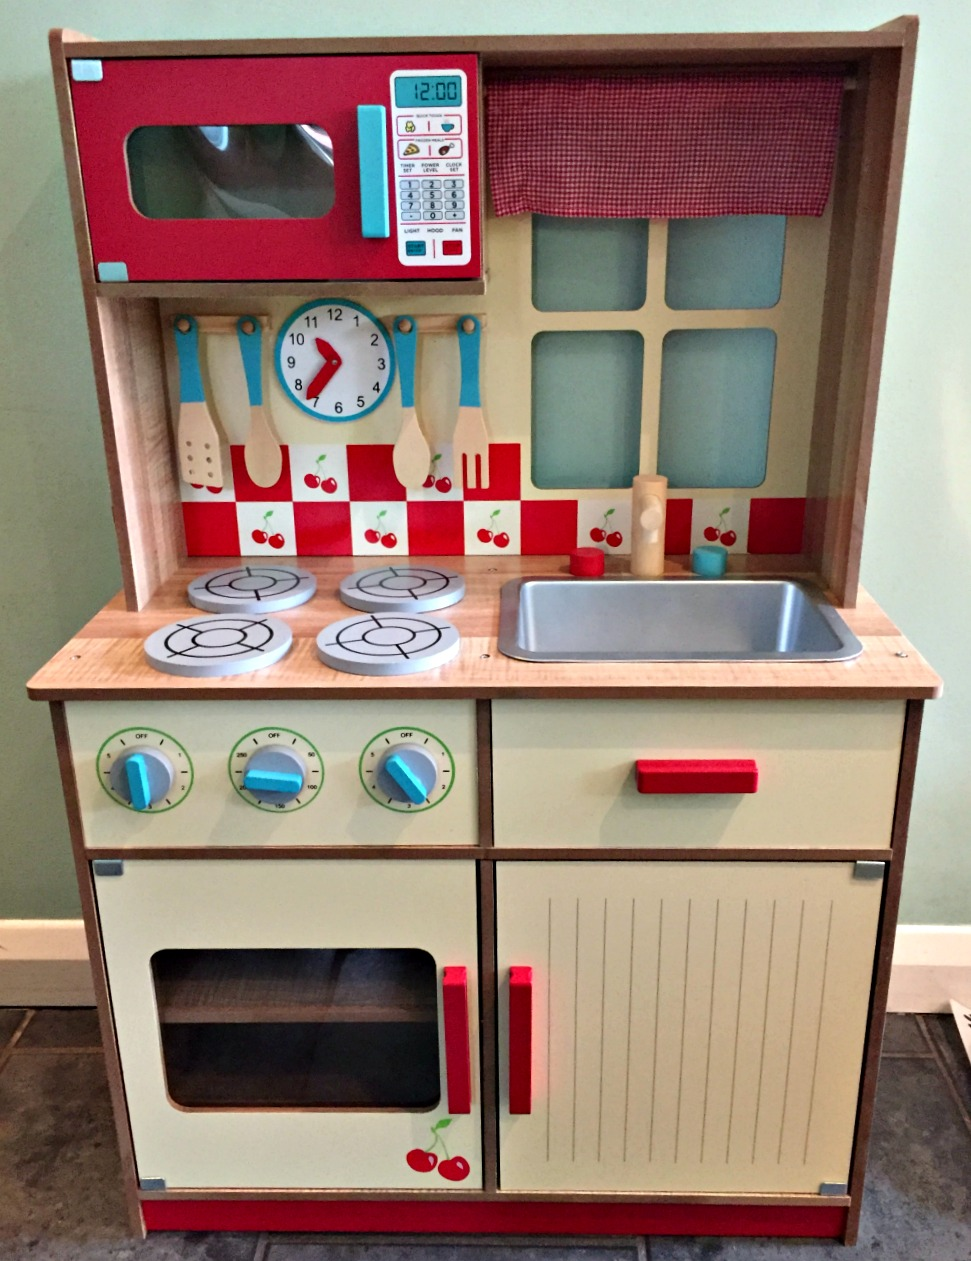 #WhatWoodYouPlay Asda Wooden Kitchen Review